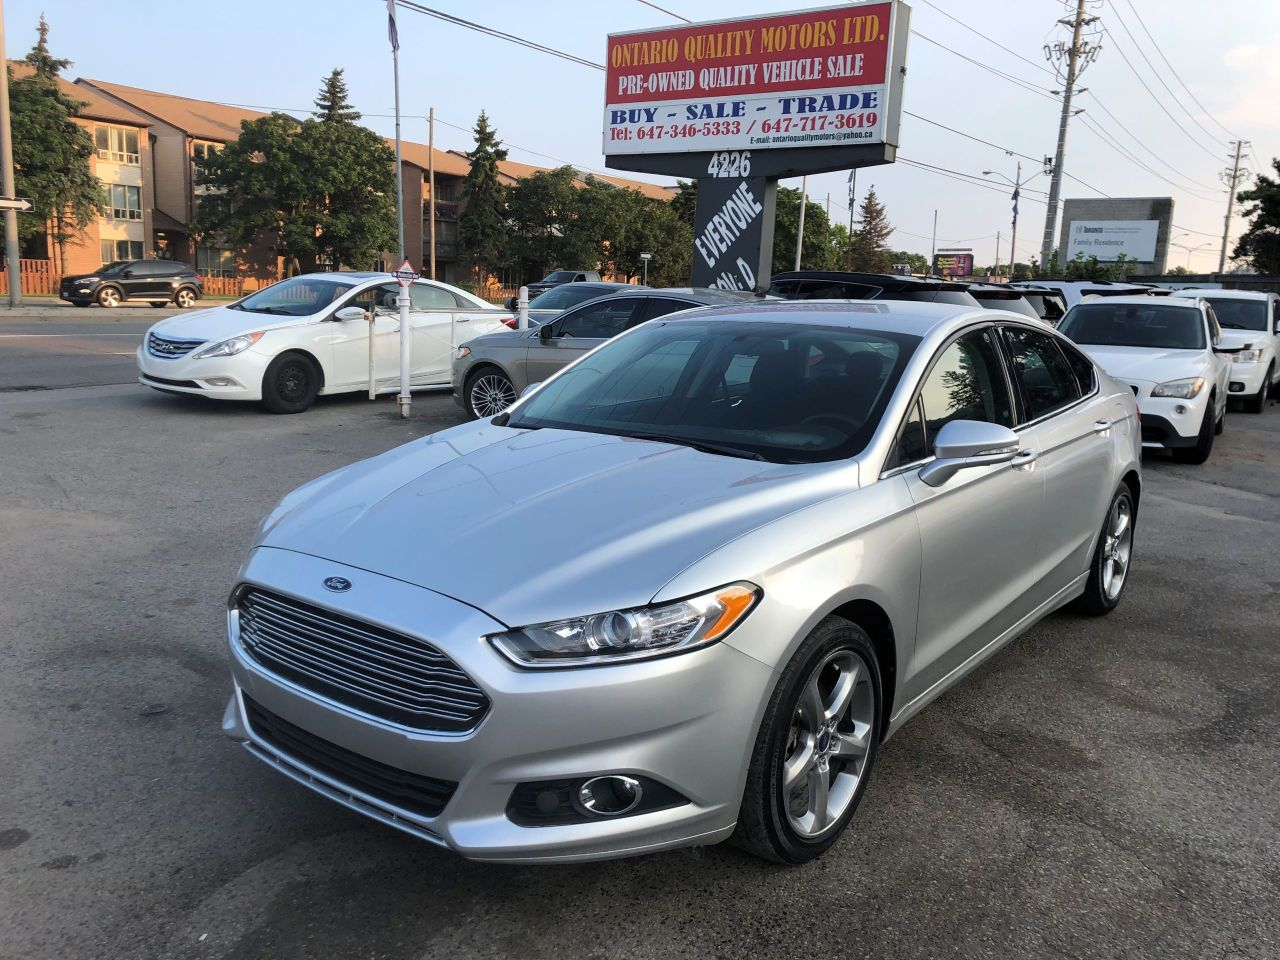 Ontario Quality Motors >> 2013 Ford Fusion Ontario Quality Motors Ltd